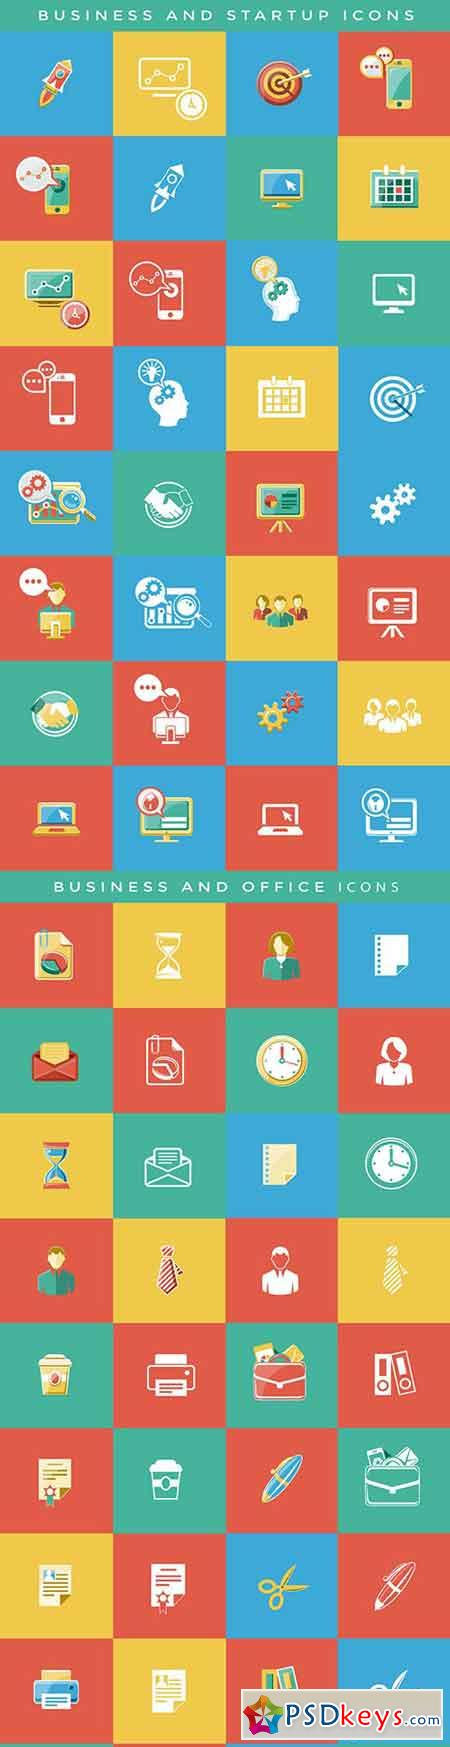 Business & Startup Flat Icons 15992053 - After Effects Projects